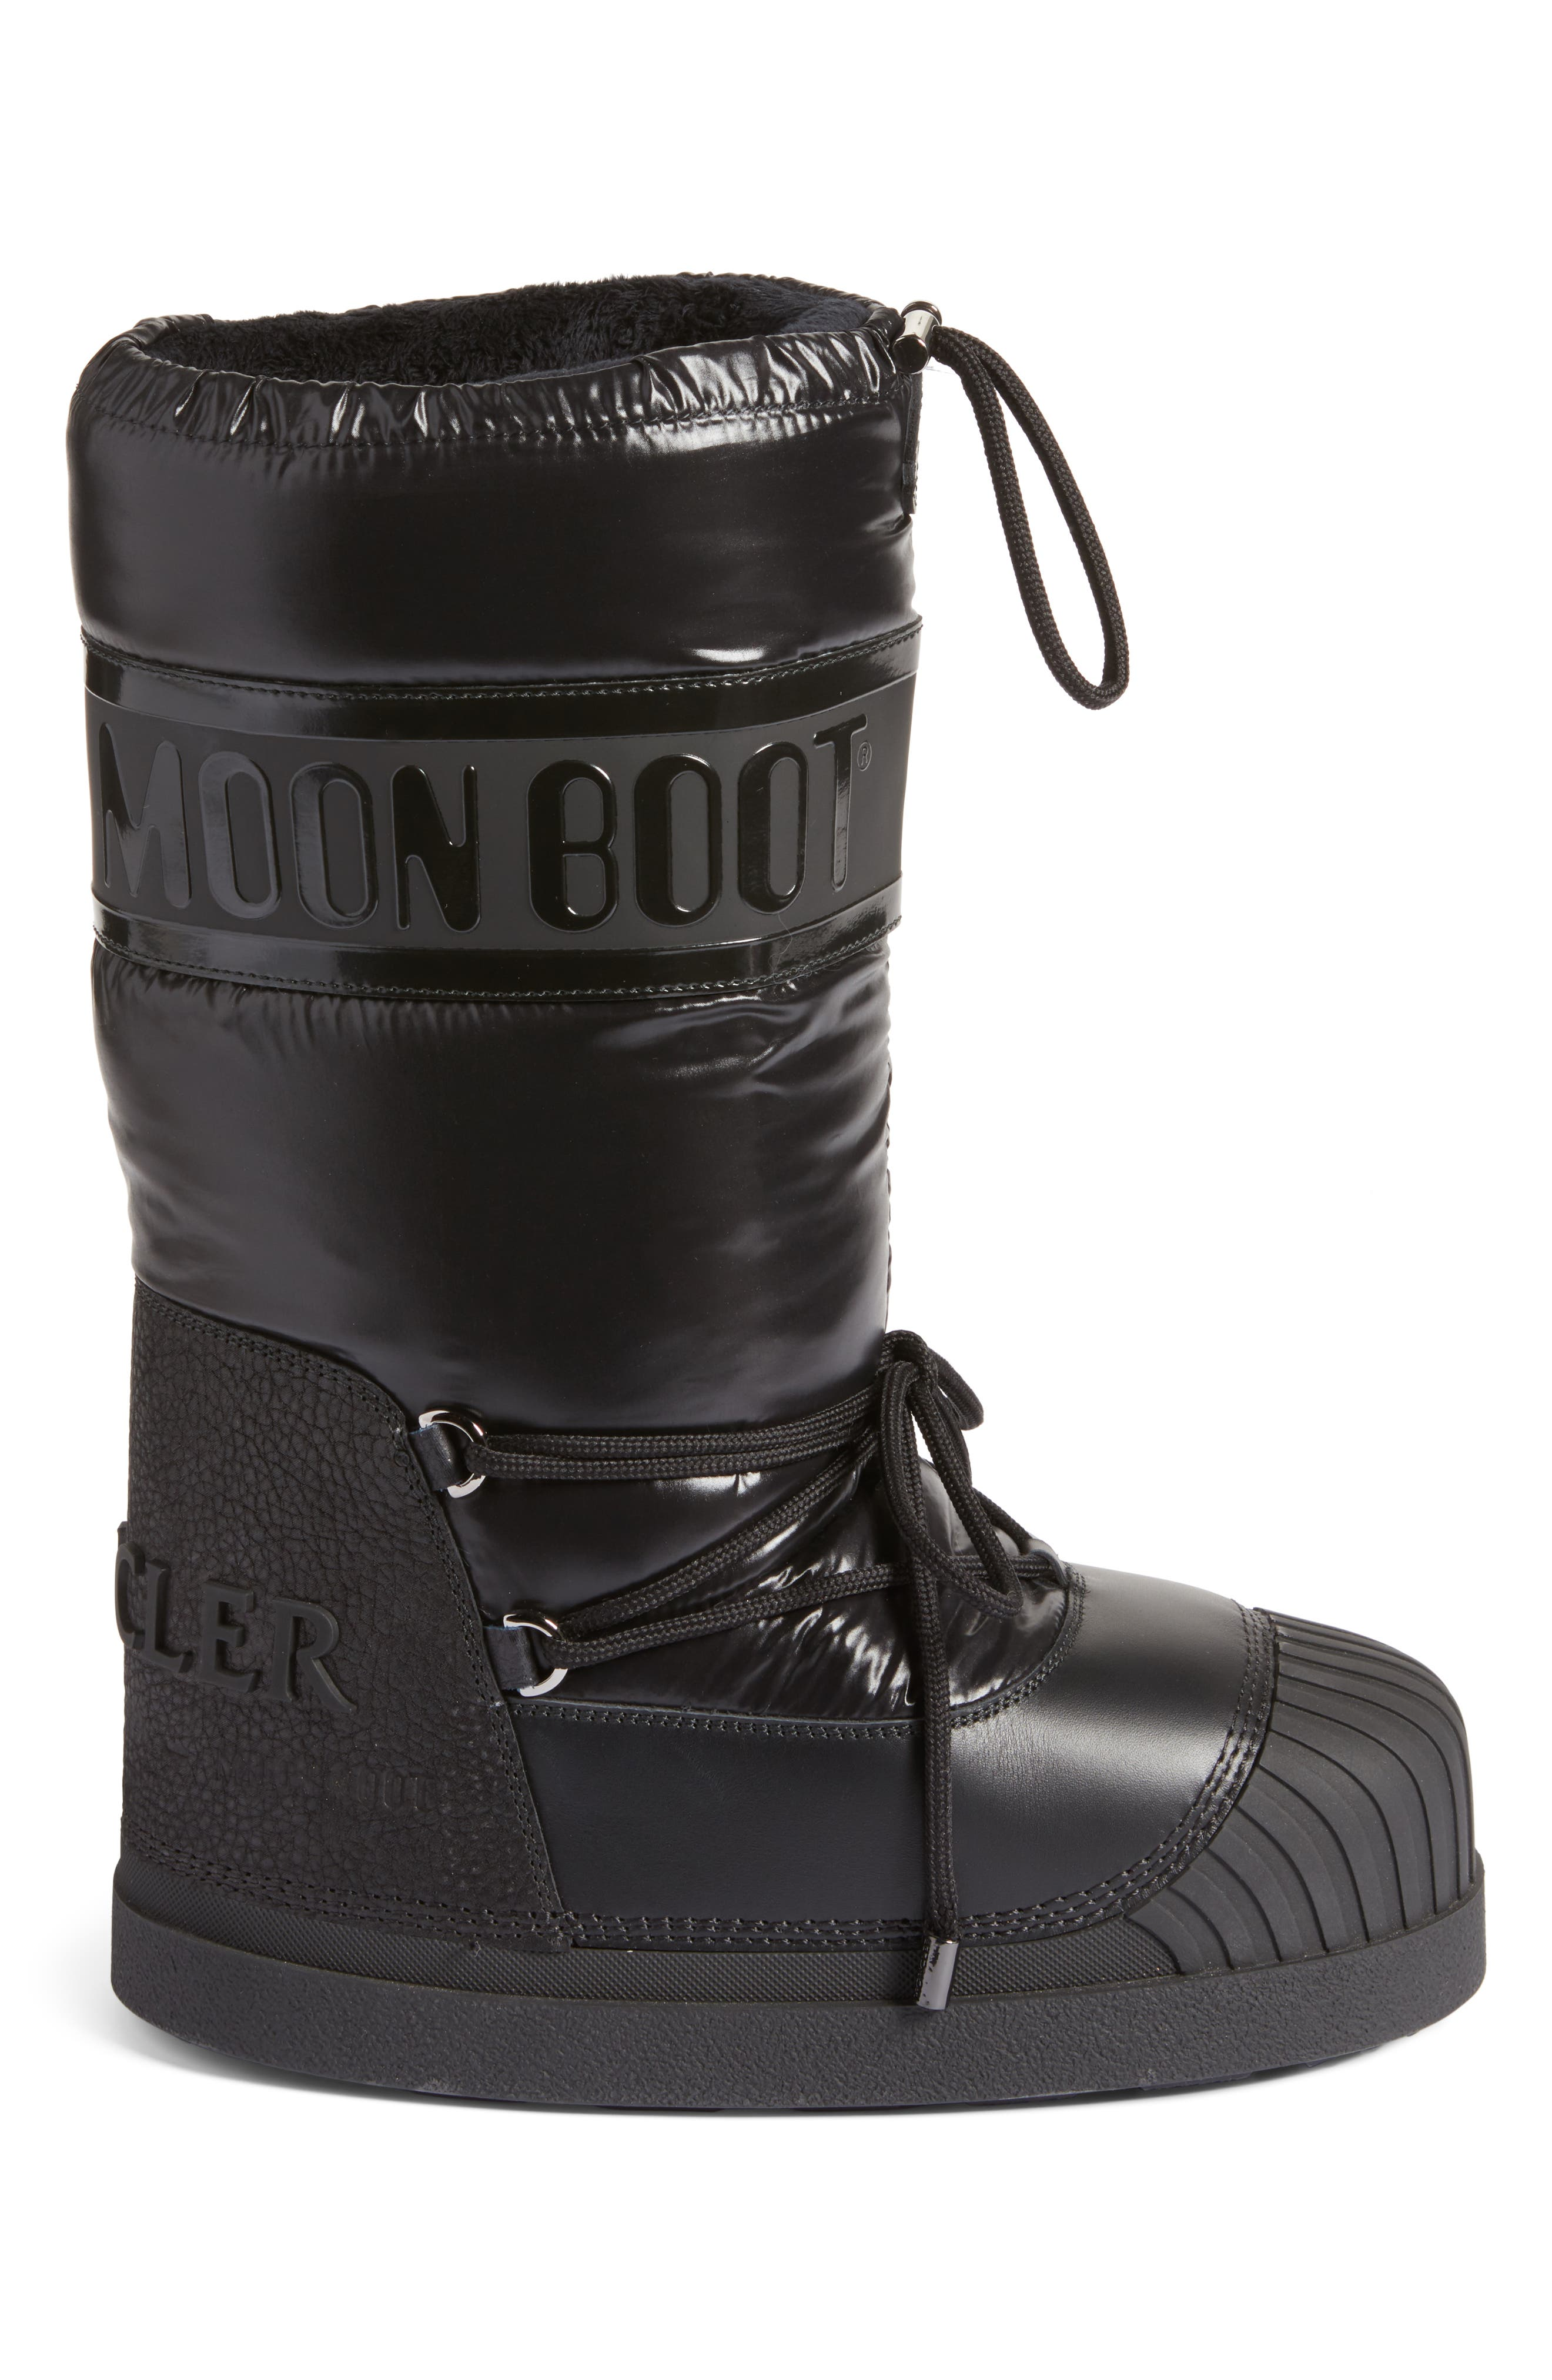 Venus Moon Boot,                             Alternate thumbnail 3, color,                             Black